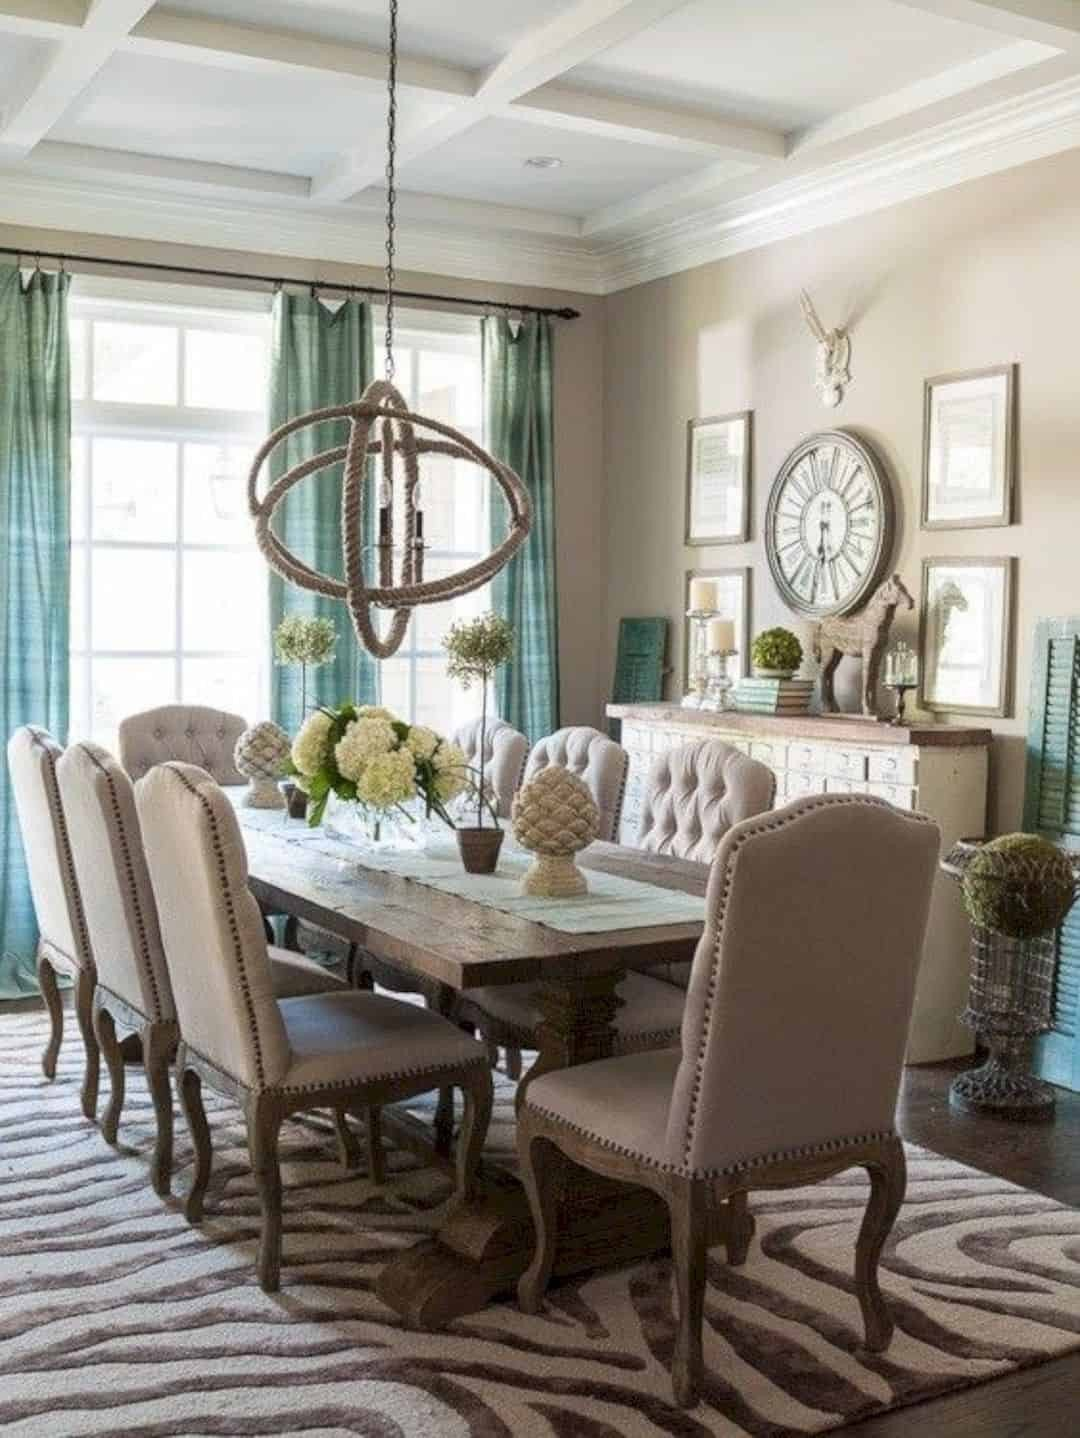 Wall Decor for Dining Rooms Inspirational 16 Dining Room Wall Decorating Ideas